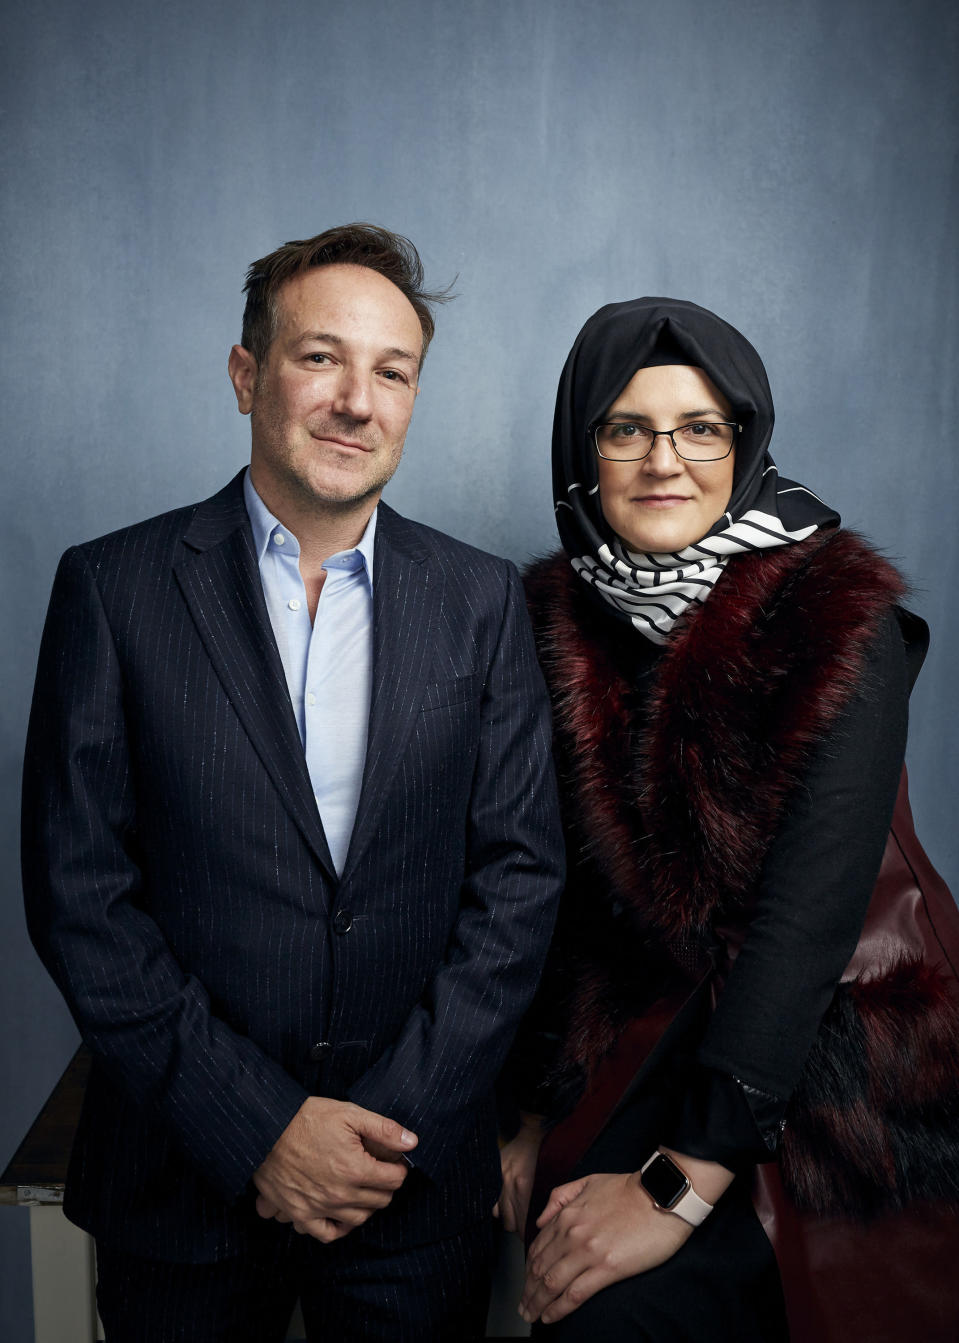 """FILE - Director Bryan Fogel, left, and Hatice Cengiz pose for a portrait to promote """"The Dissident,"""" a film about slain journalist Jamal Khashoggi, during the Sundance Film Festival in Park City, Utah on Jan. 24, 2020. (Photo by Taylor Jewell/Invision/AP, File)"""